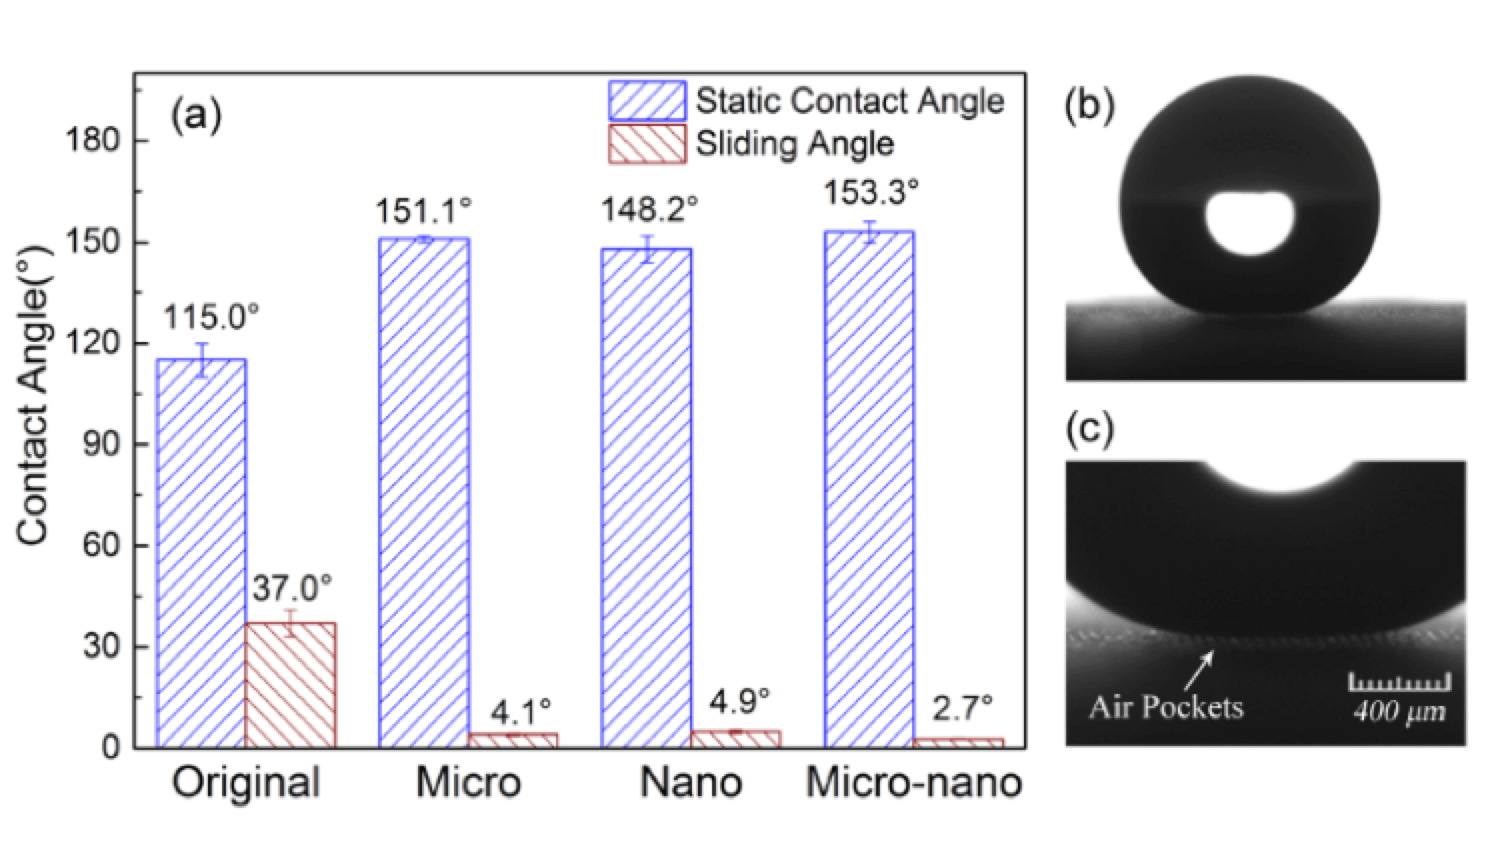 Fig. 12: Contact angle and sliding angle of the original and super-hydrophobic HTV specimens. (a) contact angle and sliding angle; (b) contact angle of HTV specimen with micro-nano structure; (c) air pockets between water and HTV specimen with micro-nano structure. composite insulator Key Issues for Future of Composite Insulators: View from China Screen Shot 2018 09 28 at 15